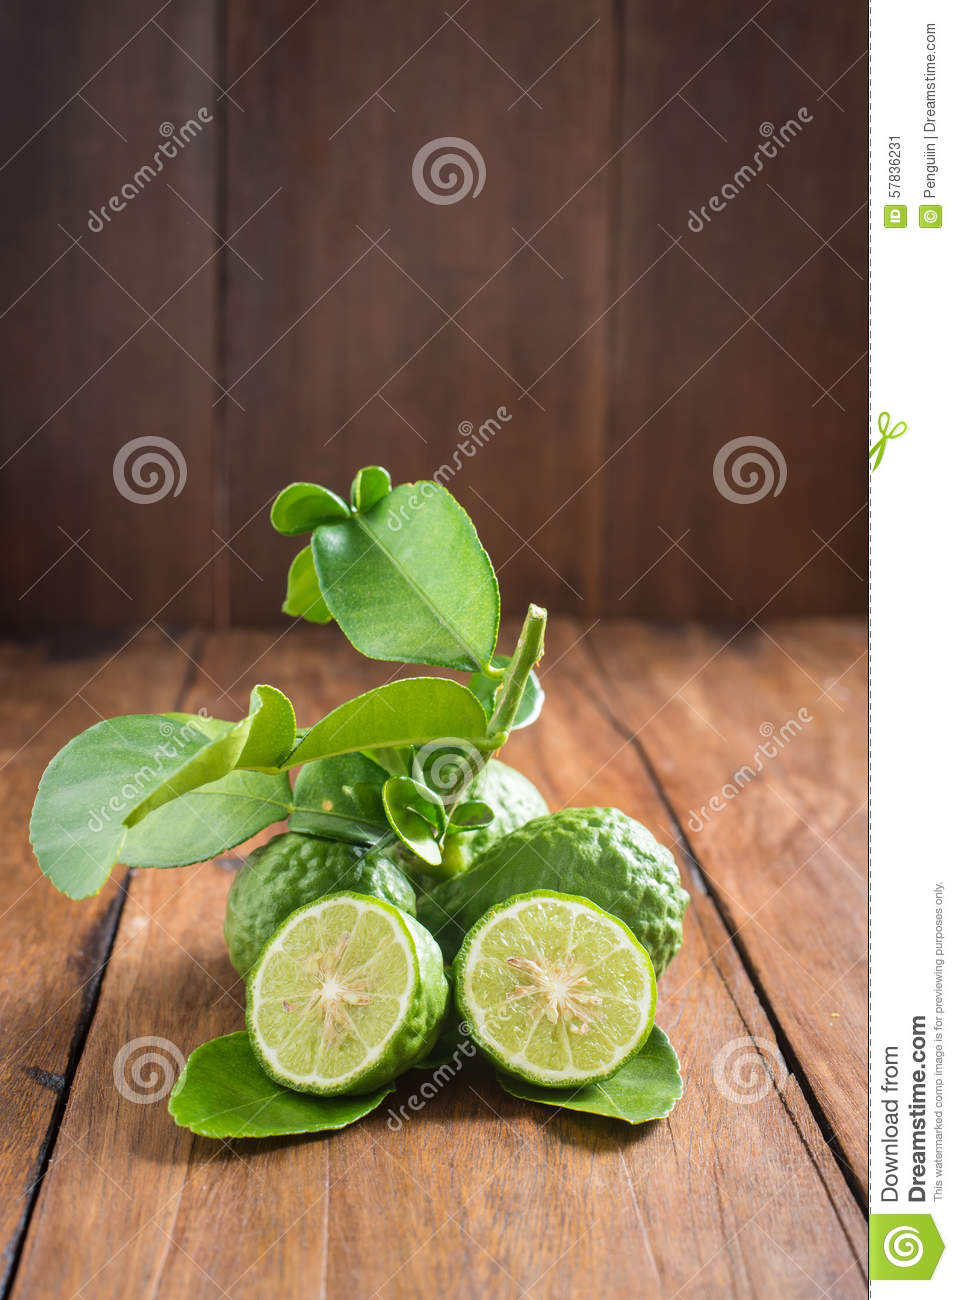 Bergamot with green leafs on wood background